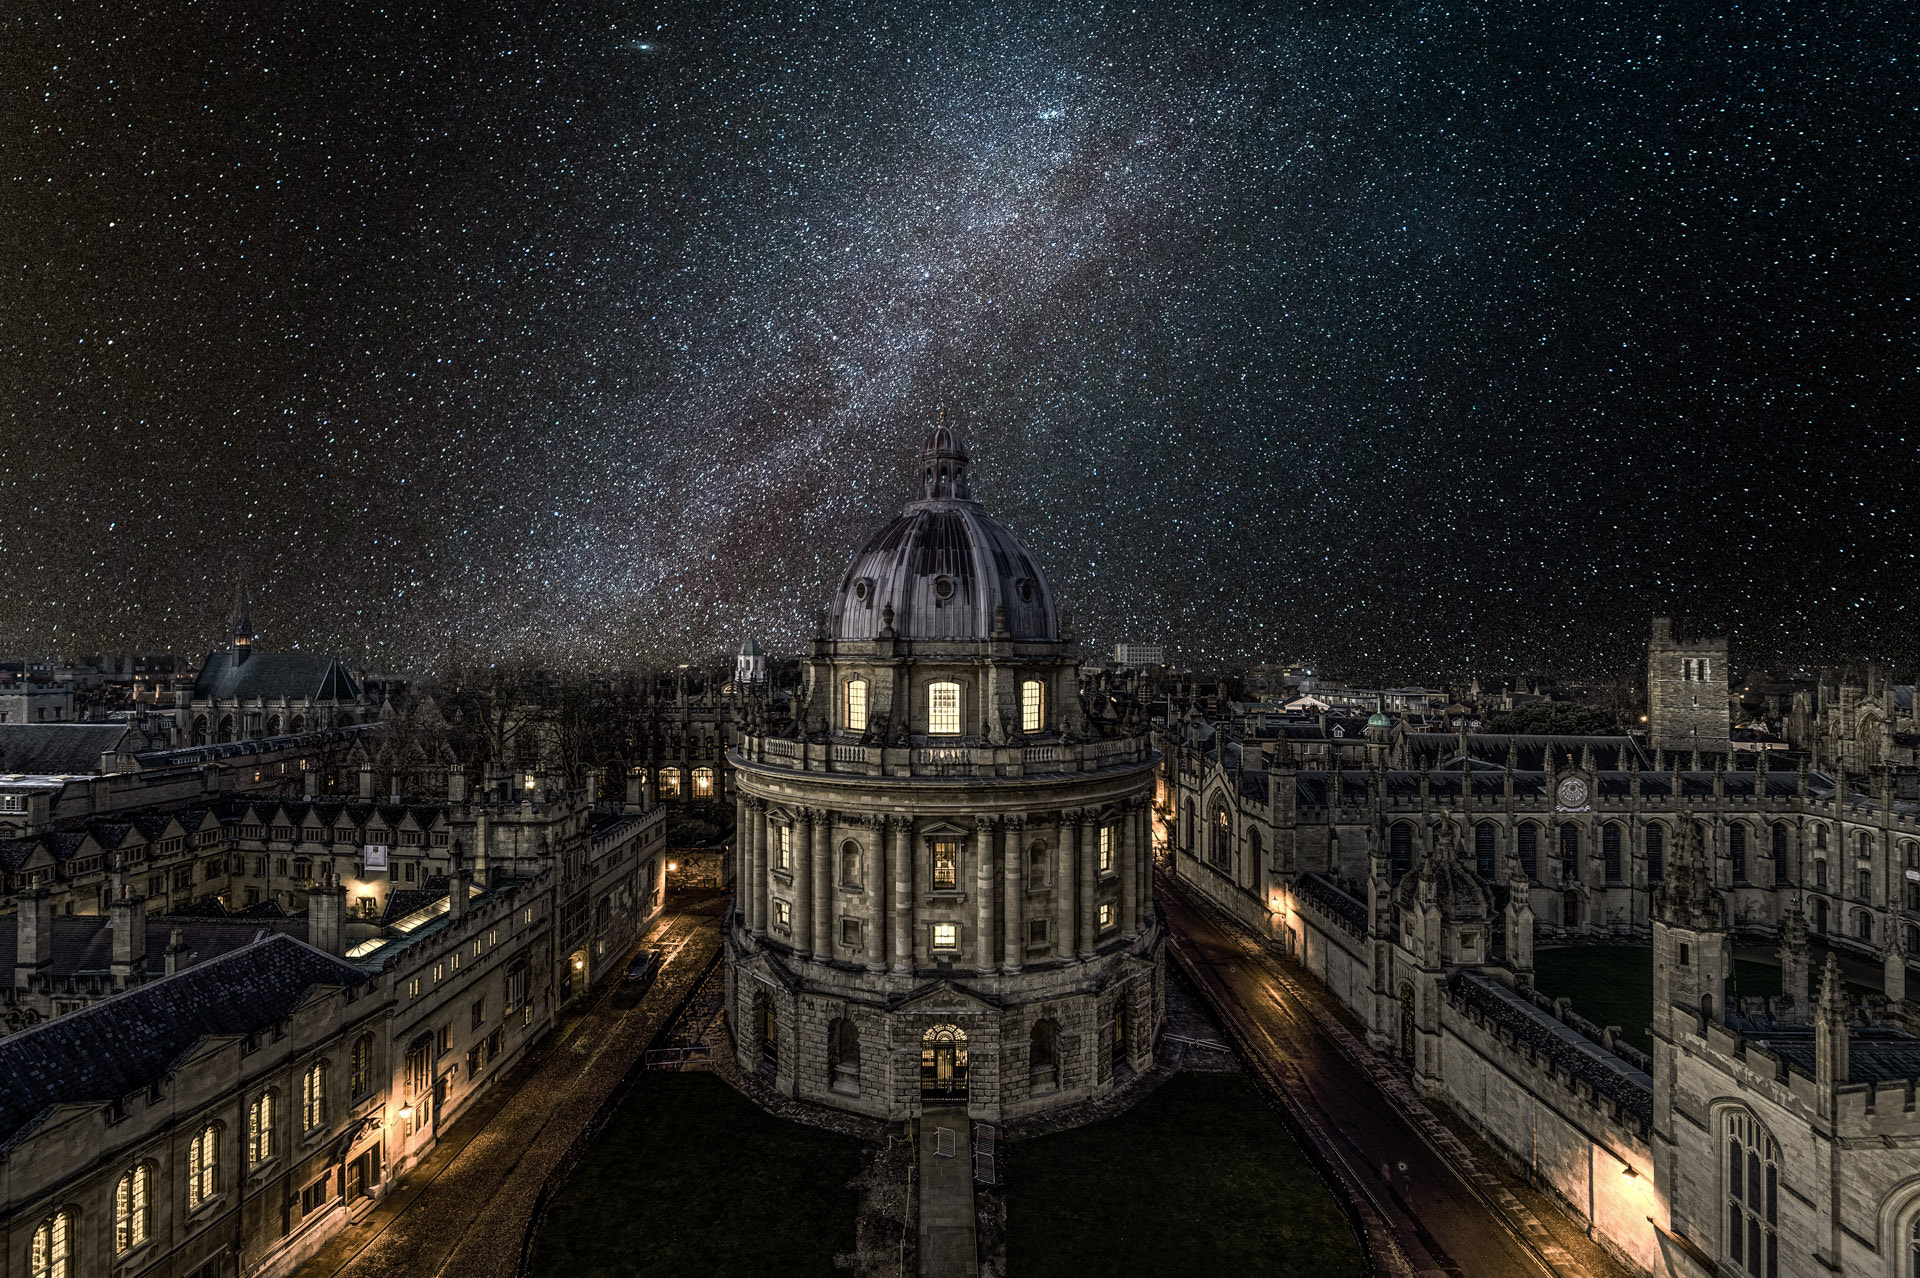 Paint Falling Wallpaper Oxford University Under The Winter Milky Way By Yunli Song